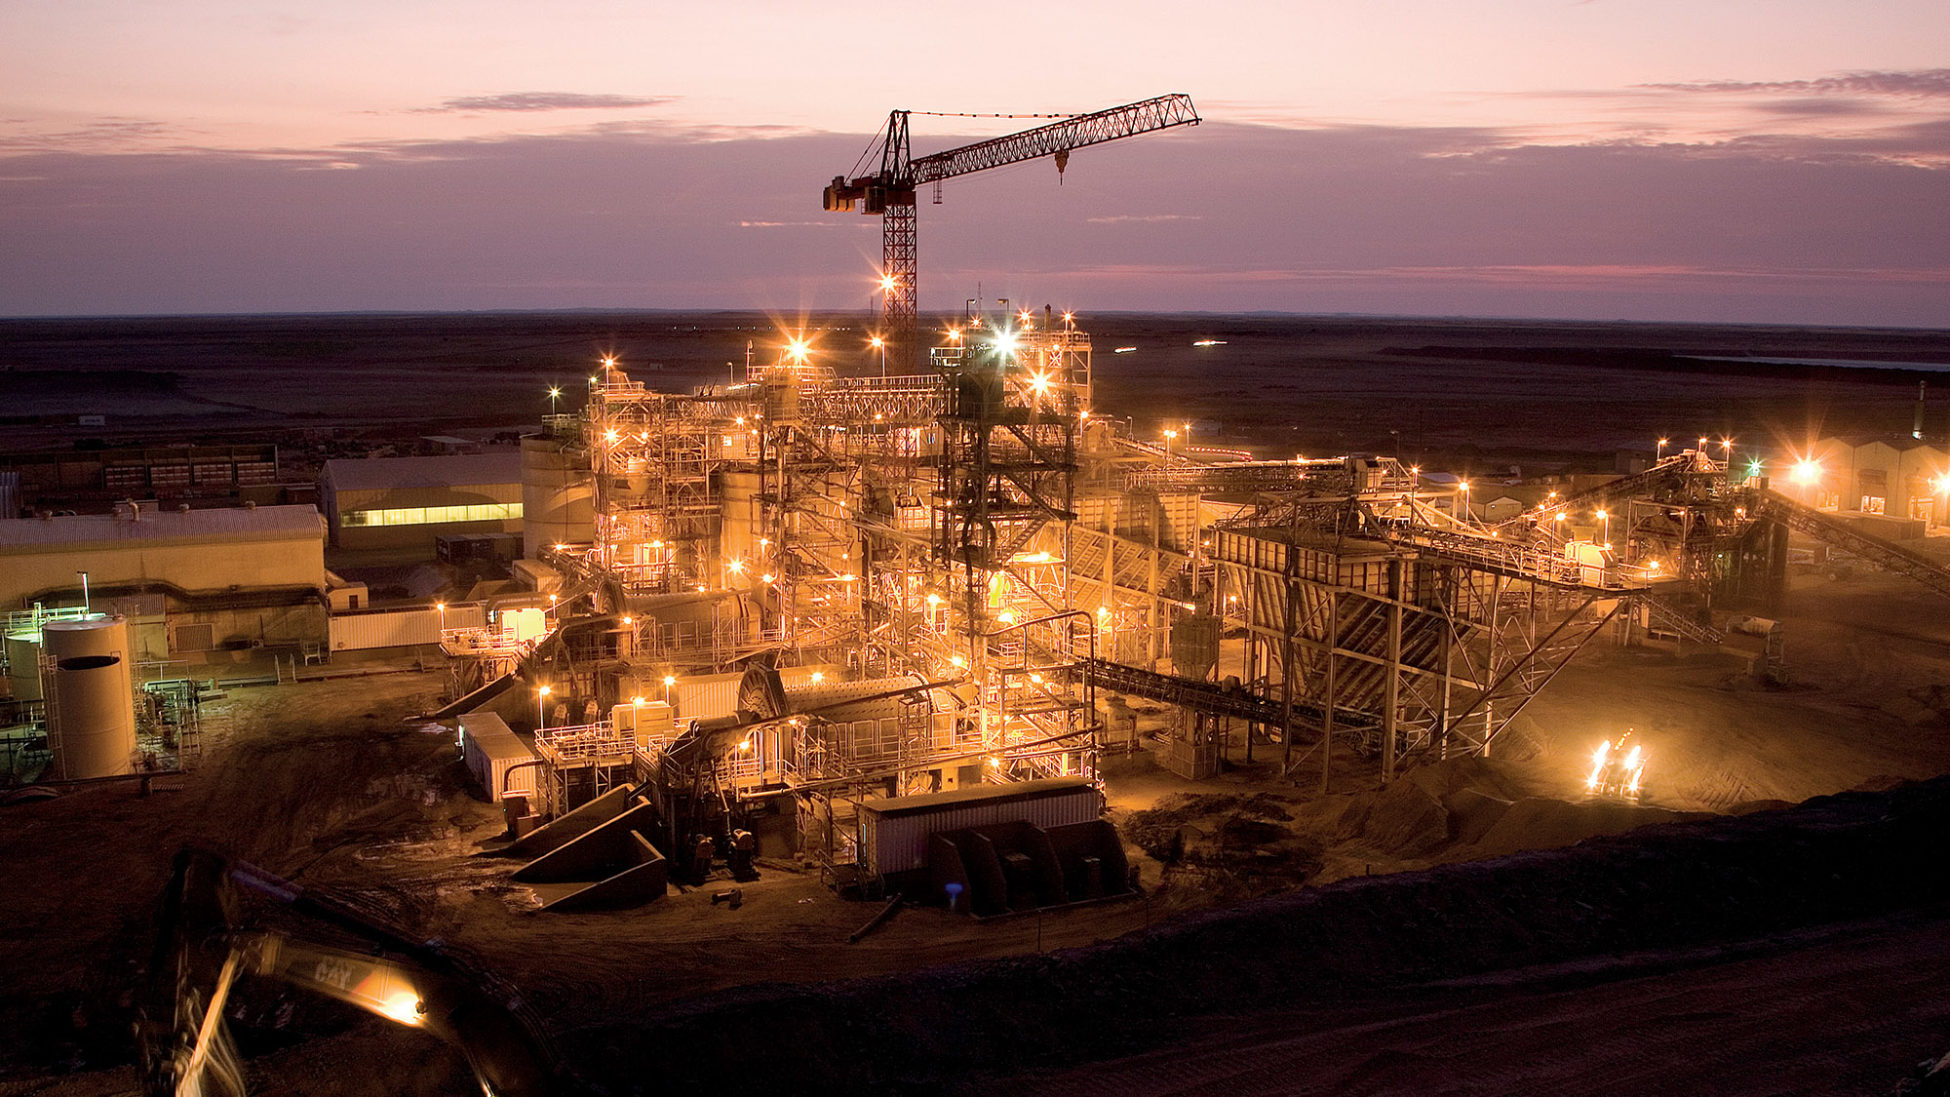 Extension works in the Tasiast gold mine